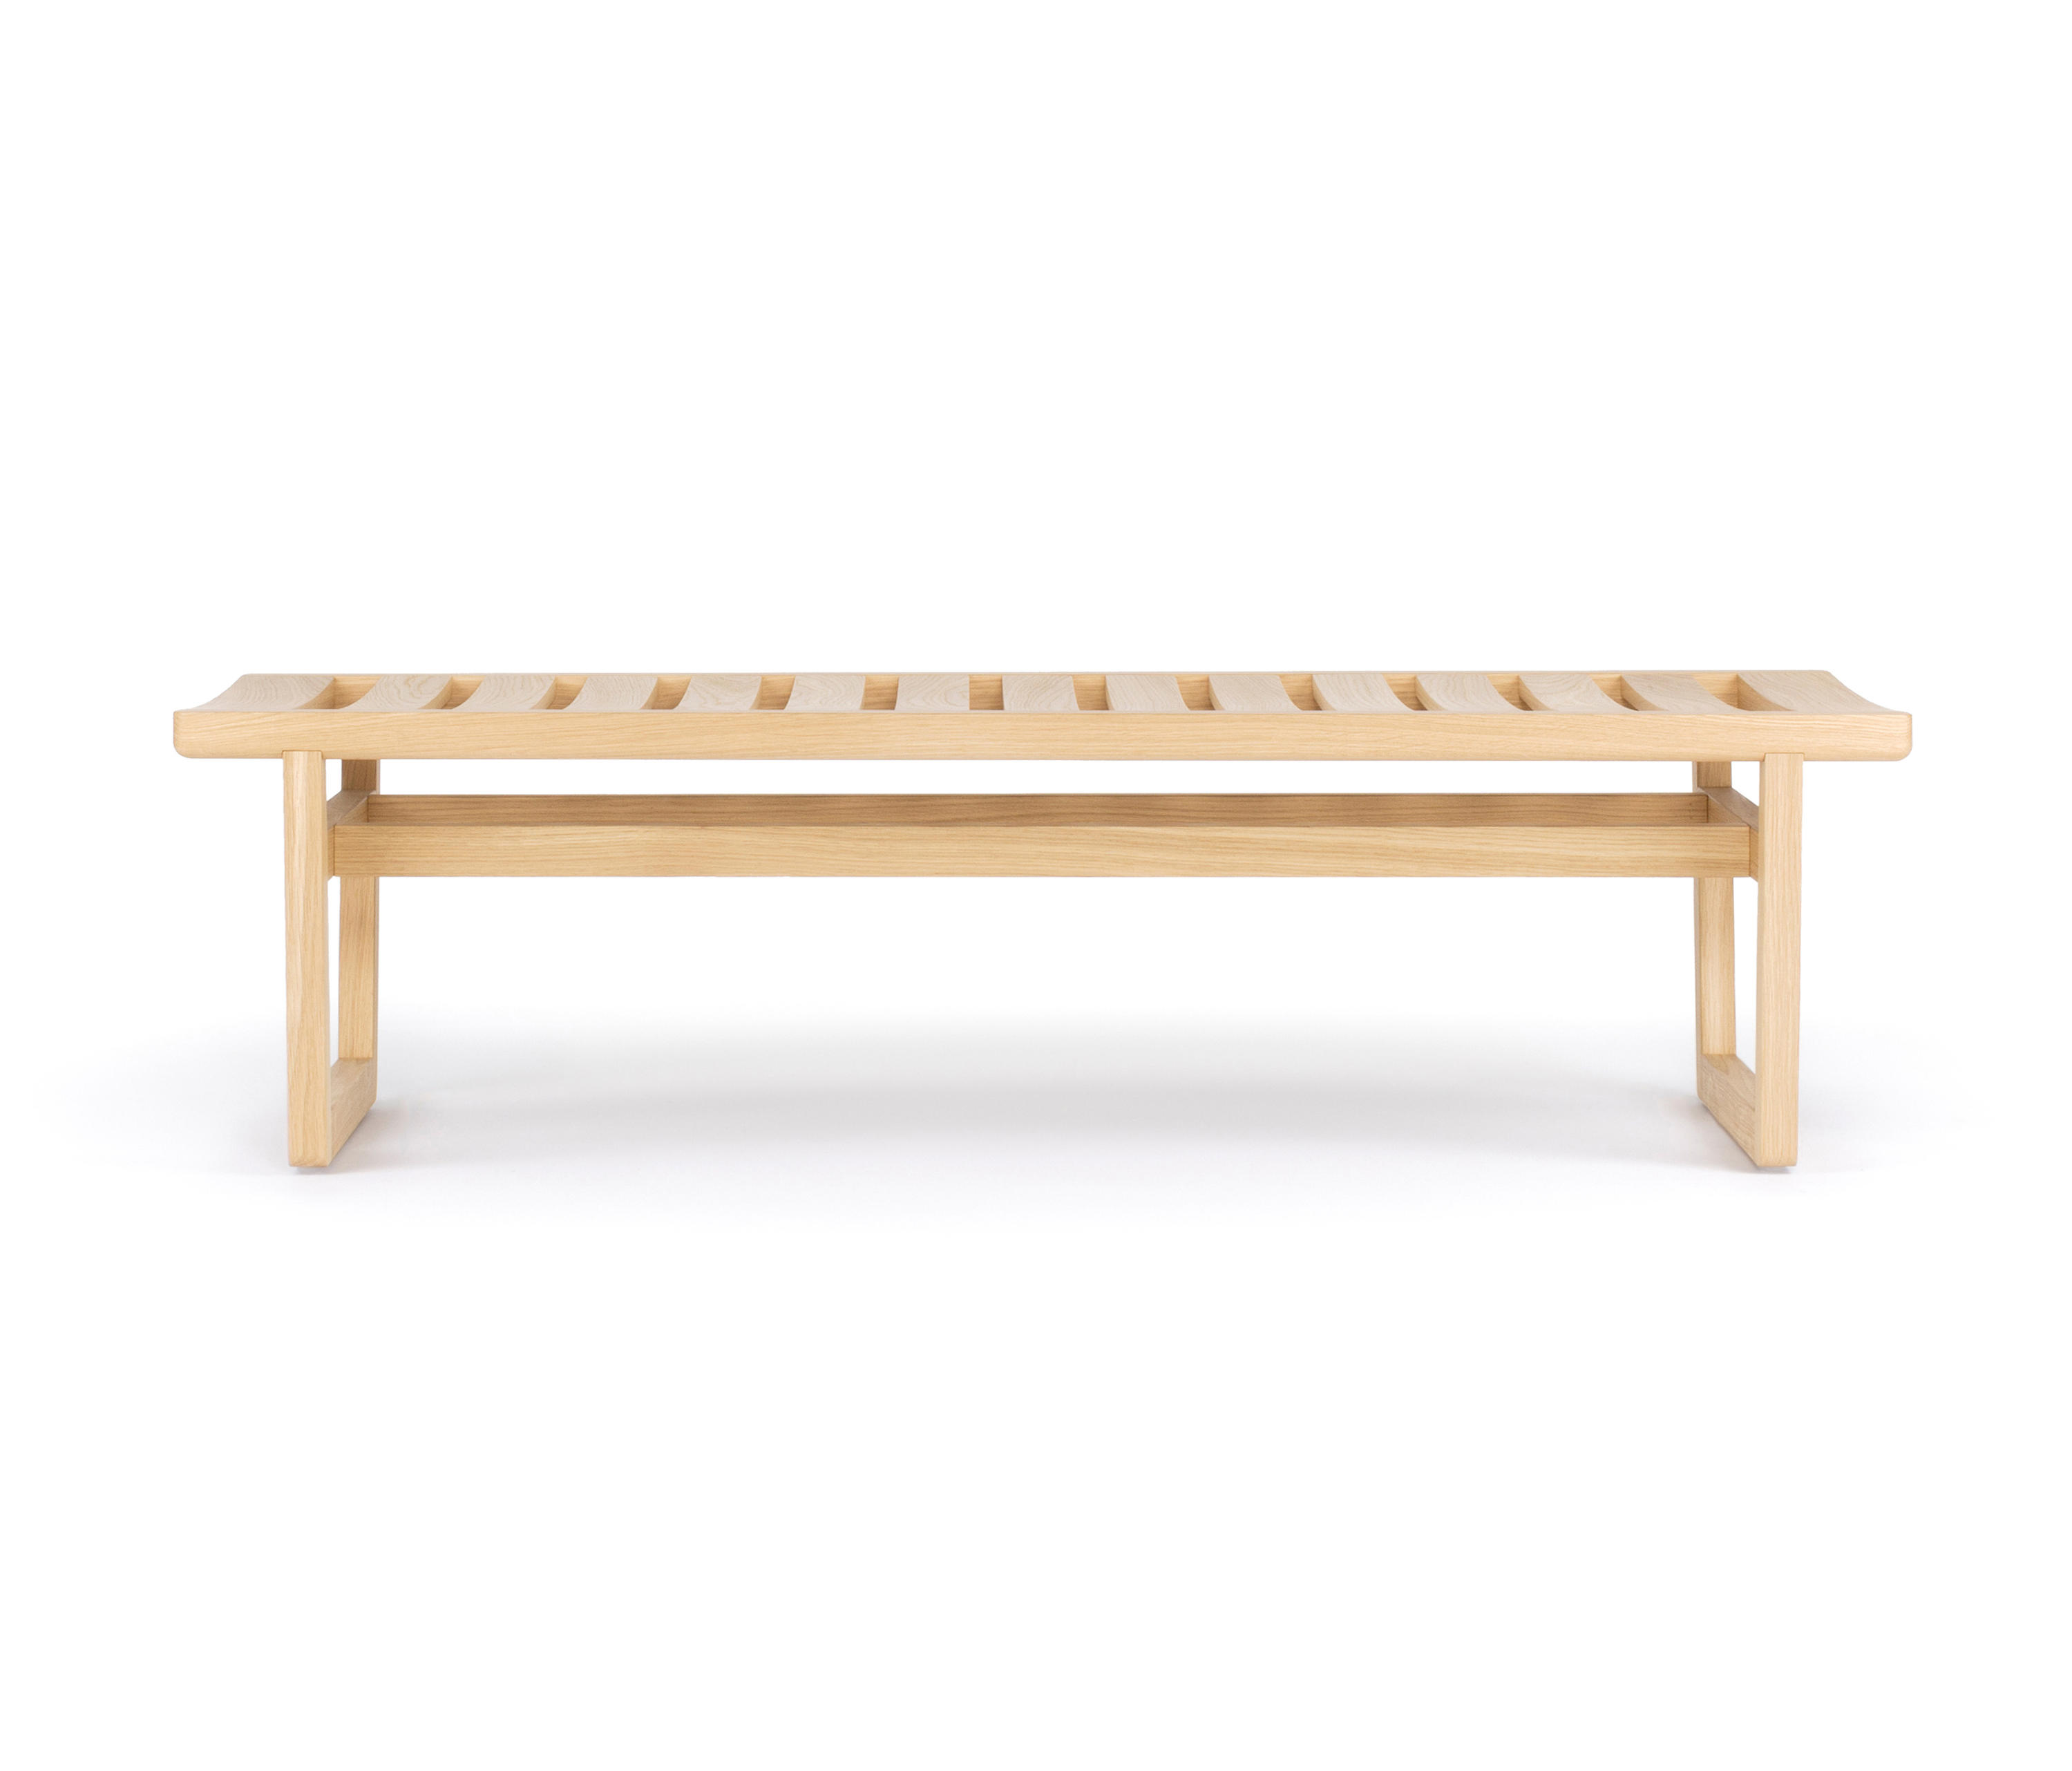 Groovy Oak Bench Small Designer Furniture Architonic Creativecarmelina Interior Chair Design Creativecarmelinacom